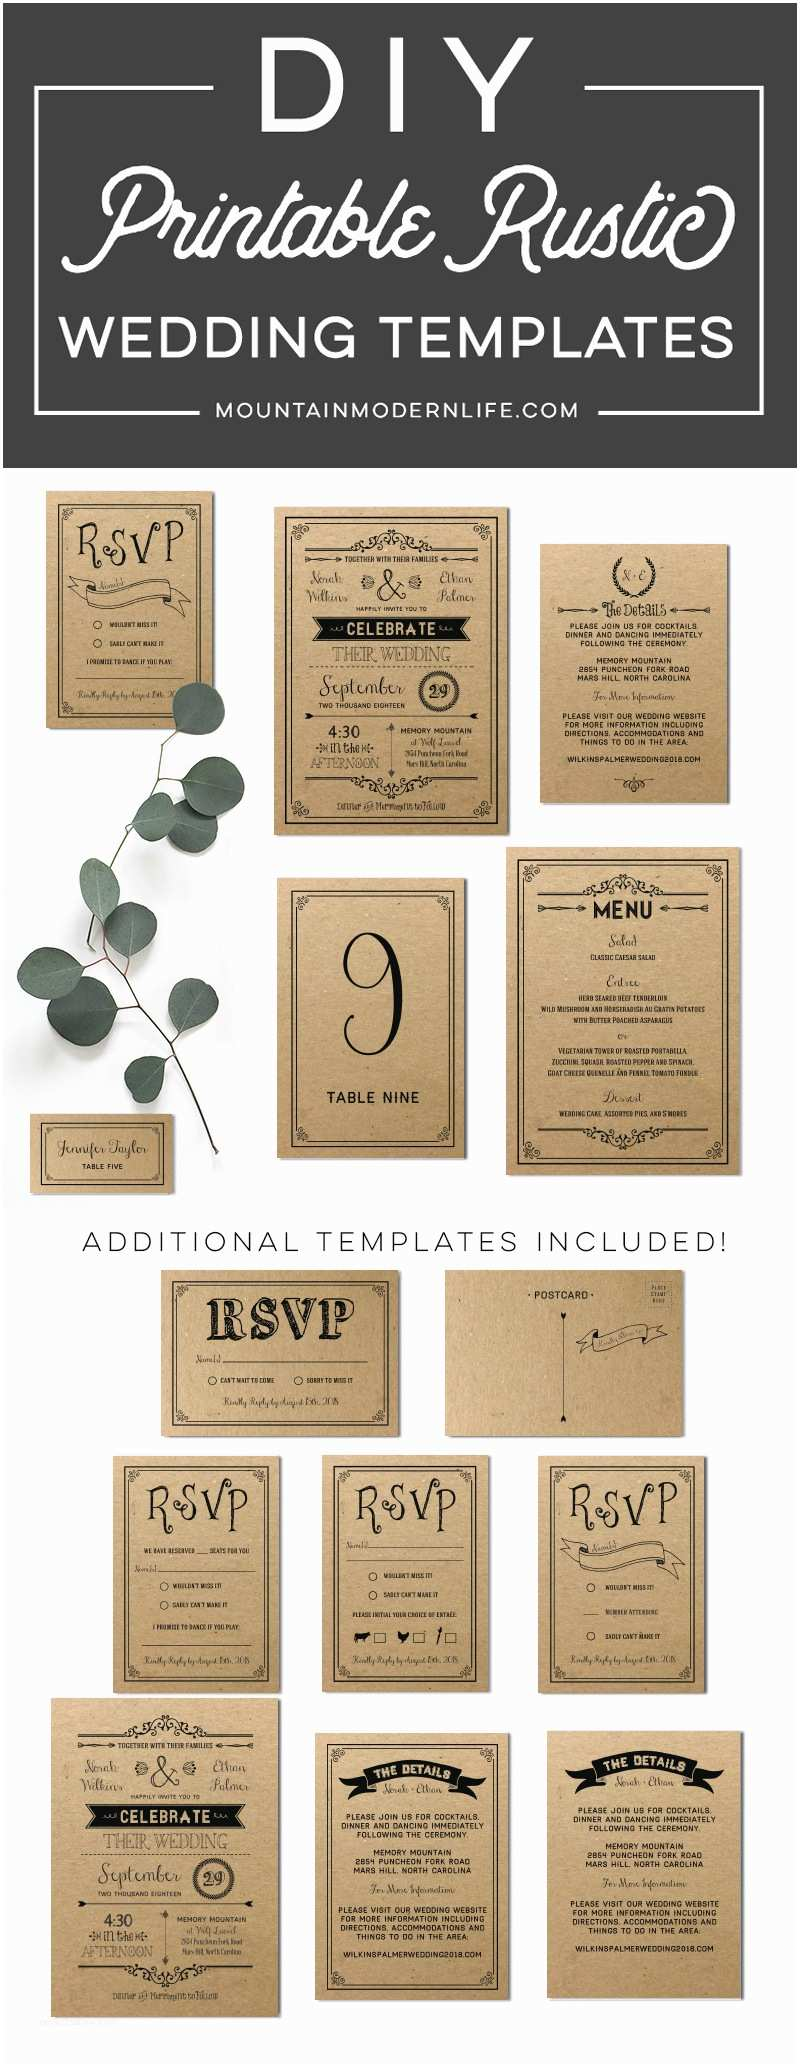 Diy Wedding Invitation software Printable Black Rustic Vintage Diy Wedding Invitation Set